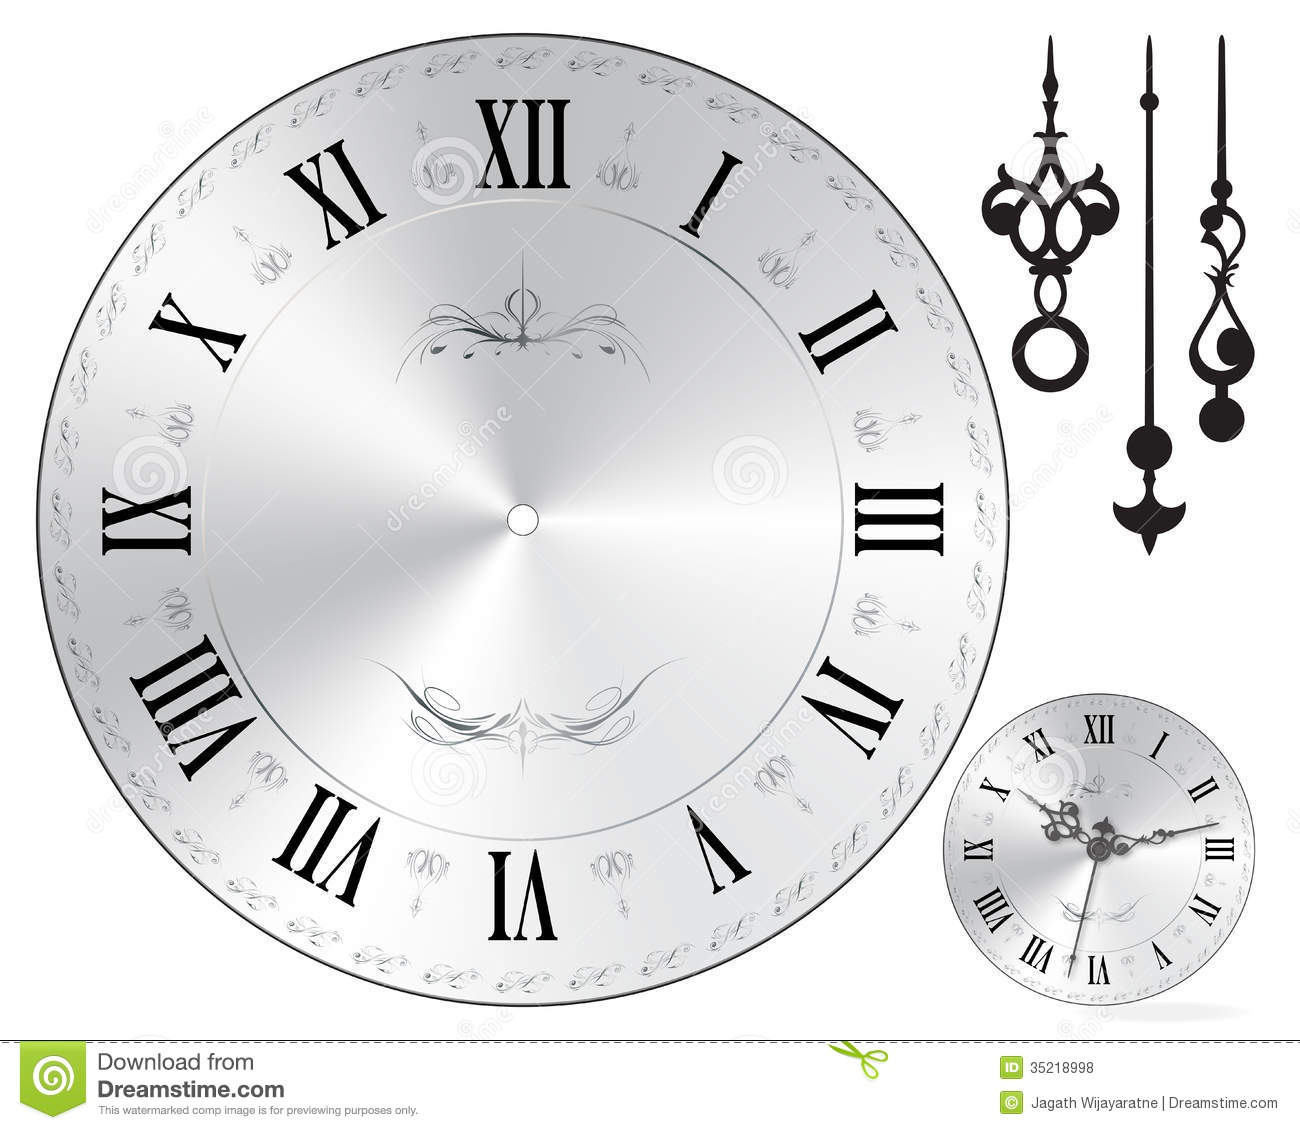 Wall clock face stock vector. Illustration of background - 35218998